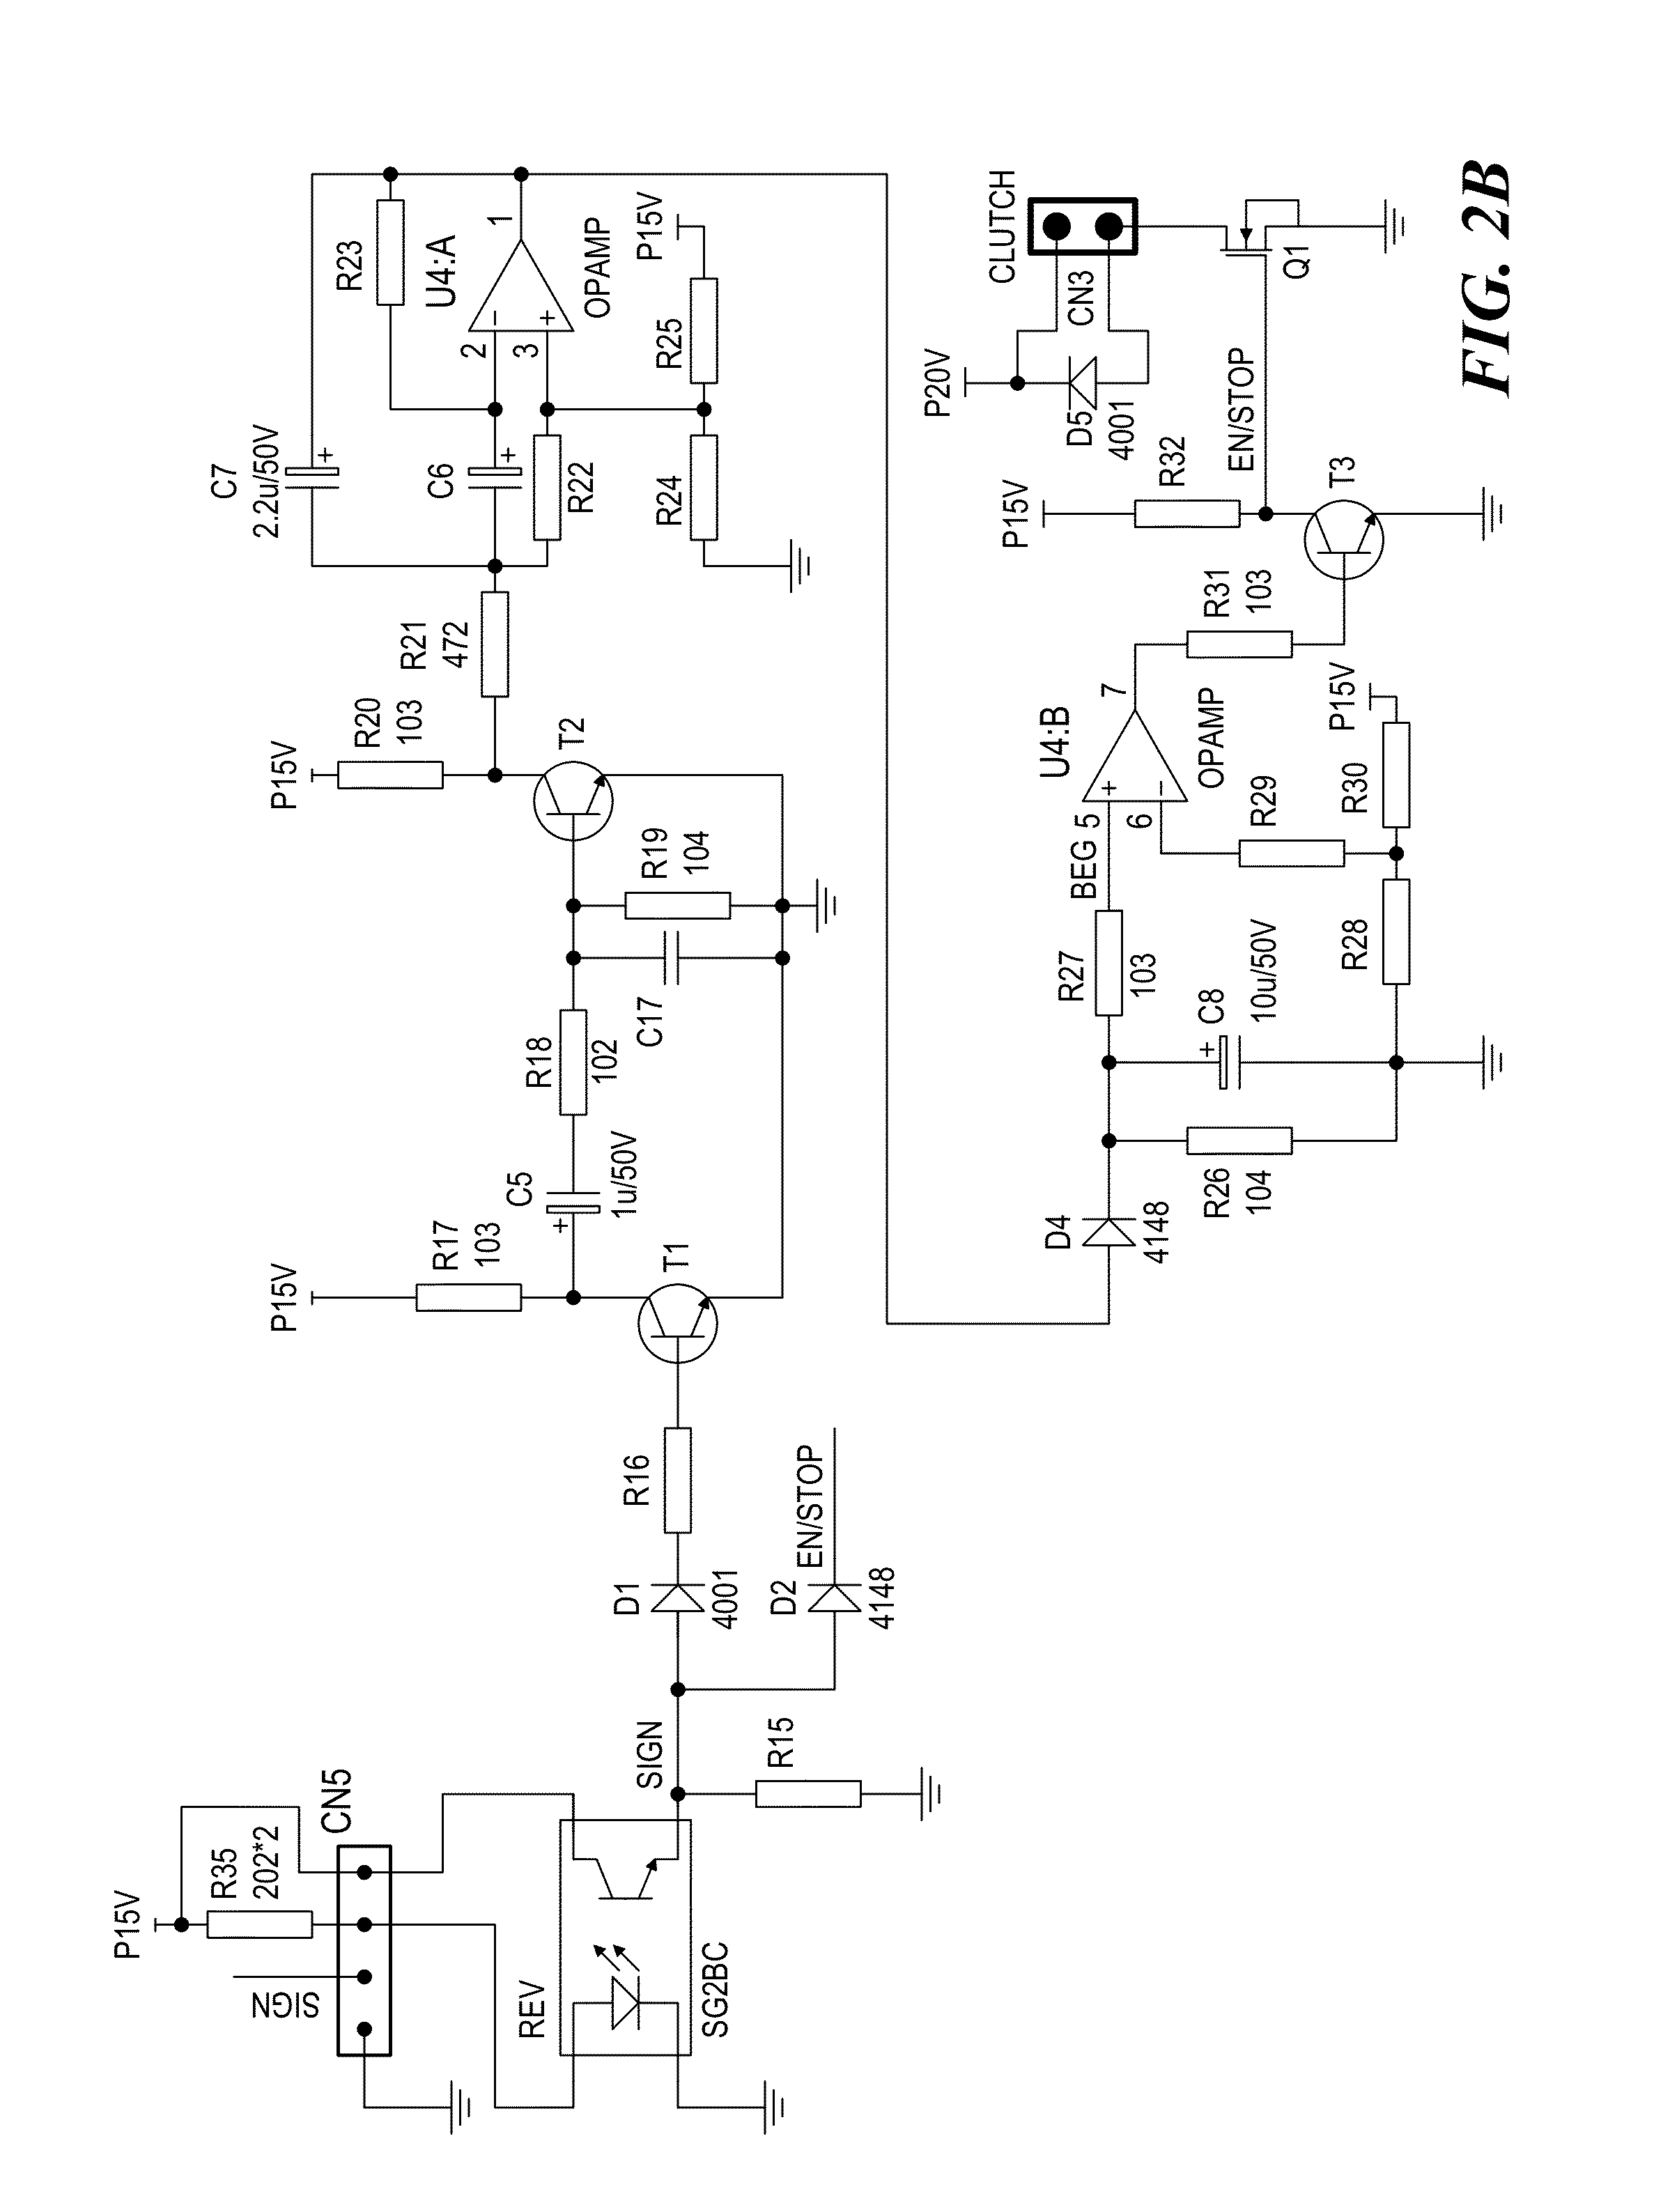 Circuit Uses A 12v Solar Battery But Can Beadapted For Other Voltages